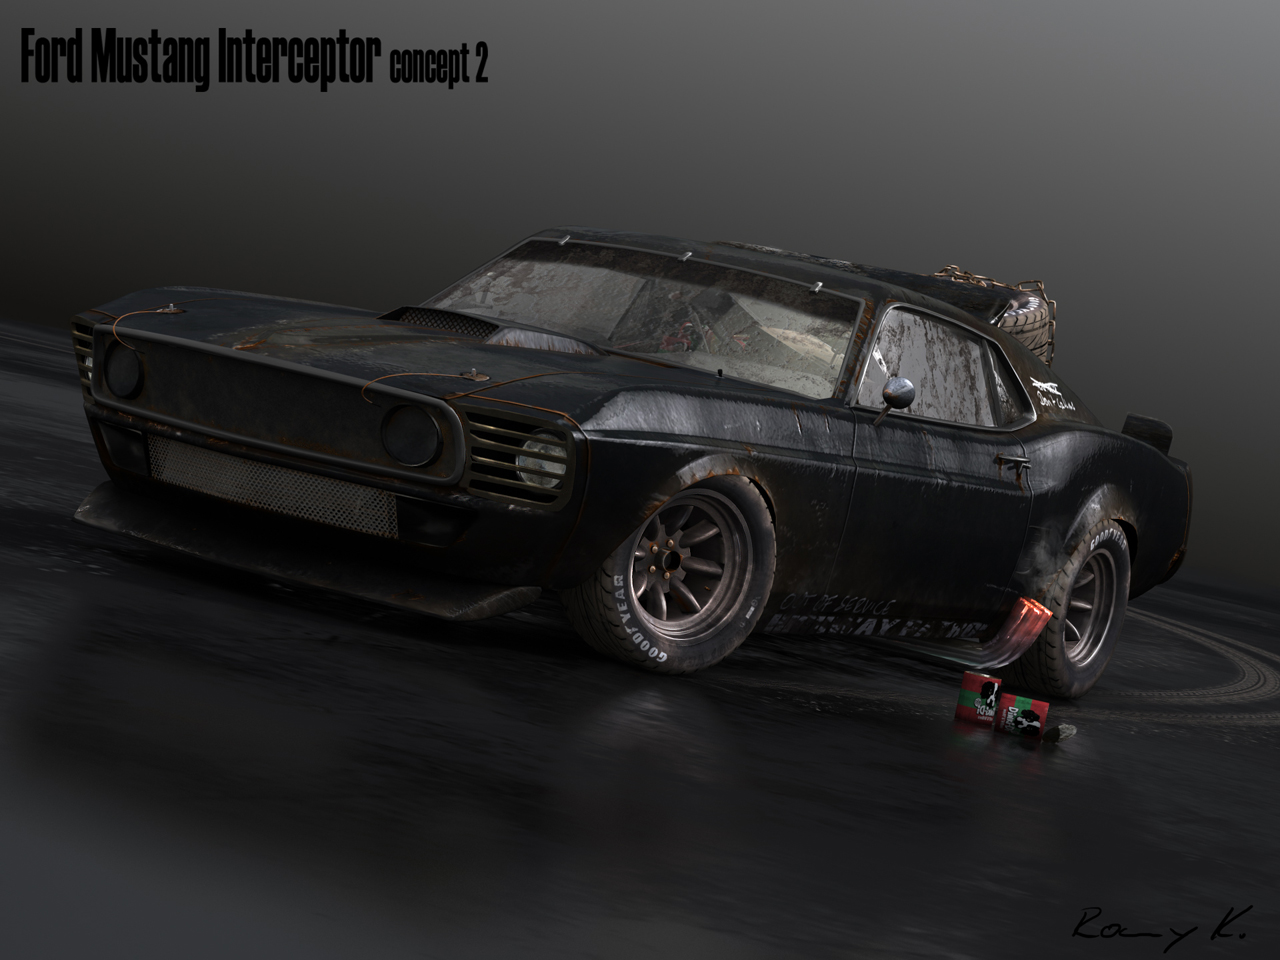 69 Mustang Interceptor Aged 2 By Rkgrafixx On Deviantart